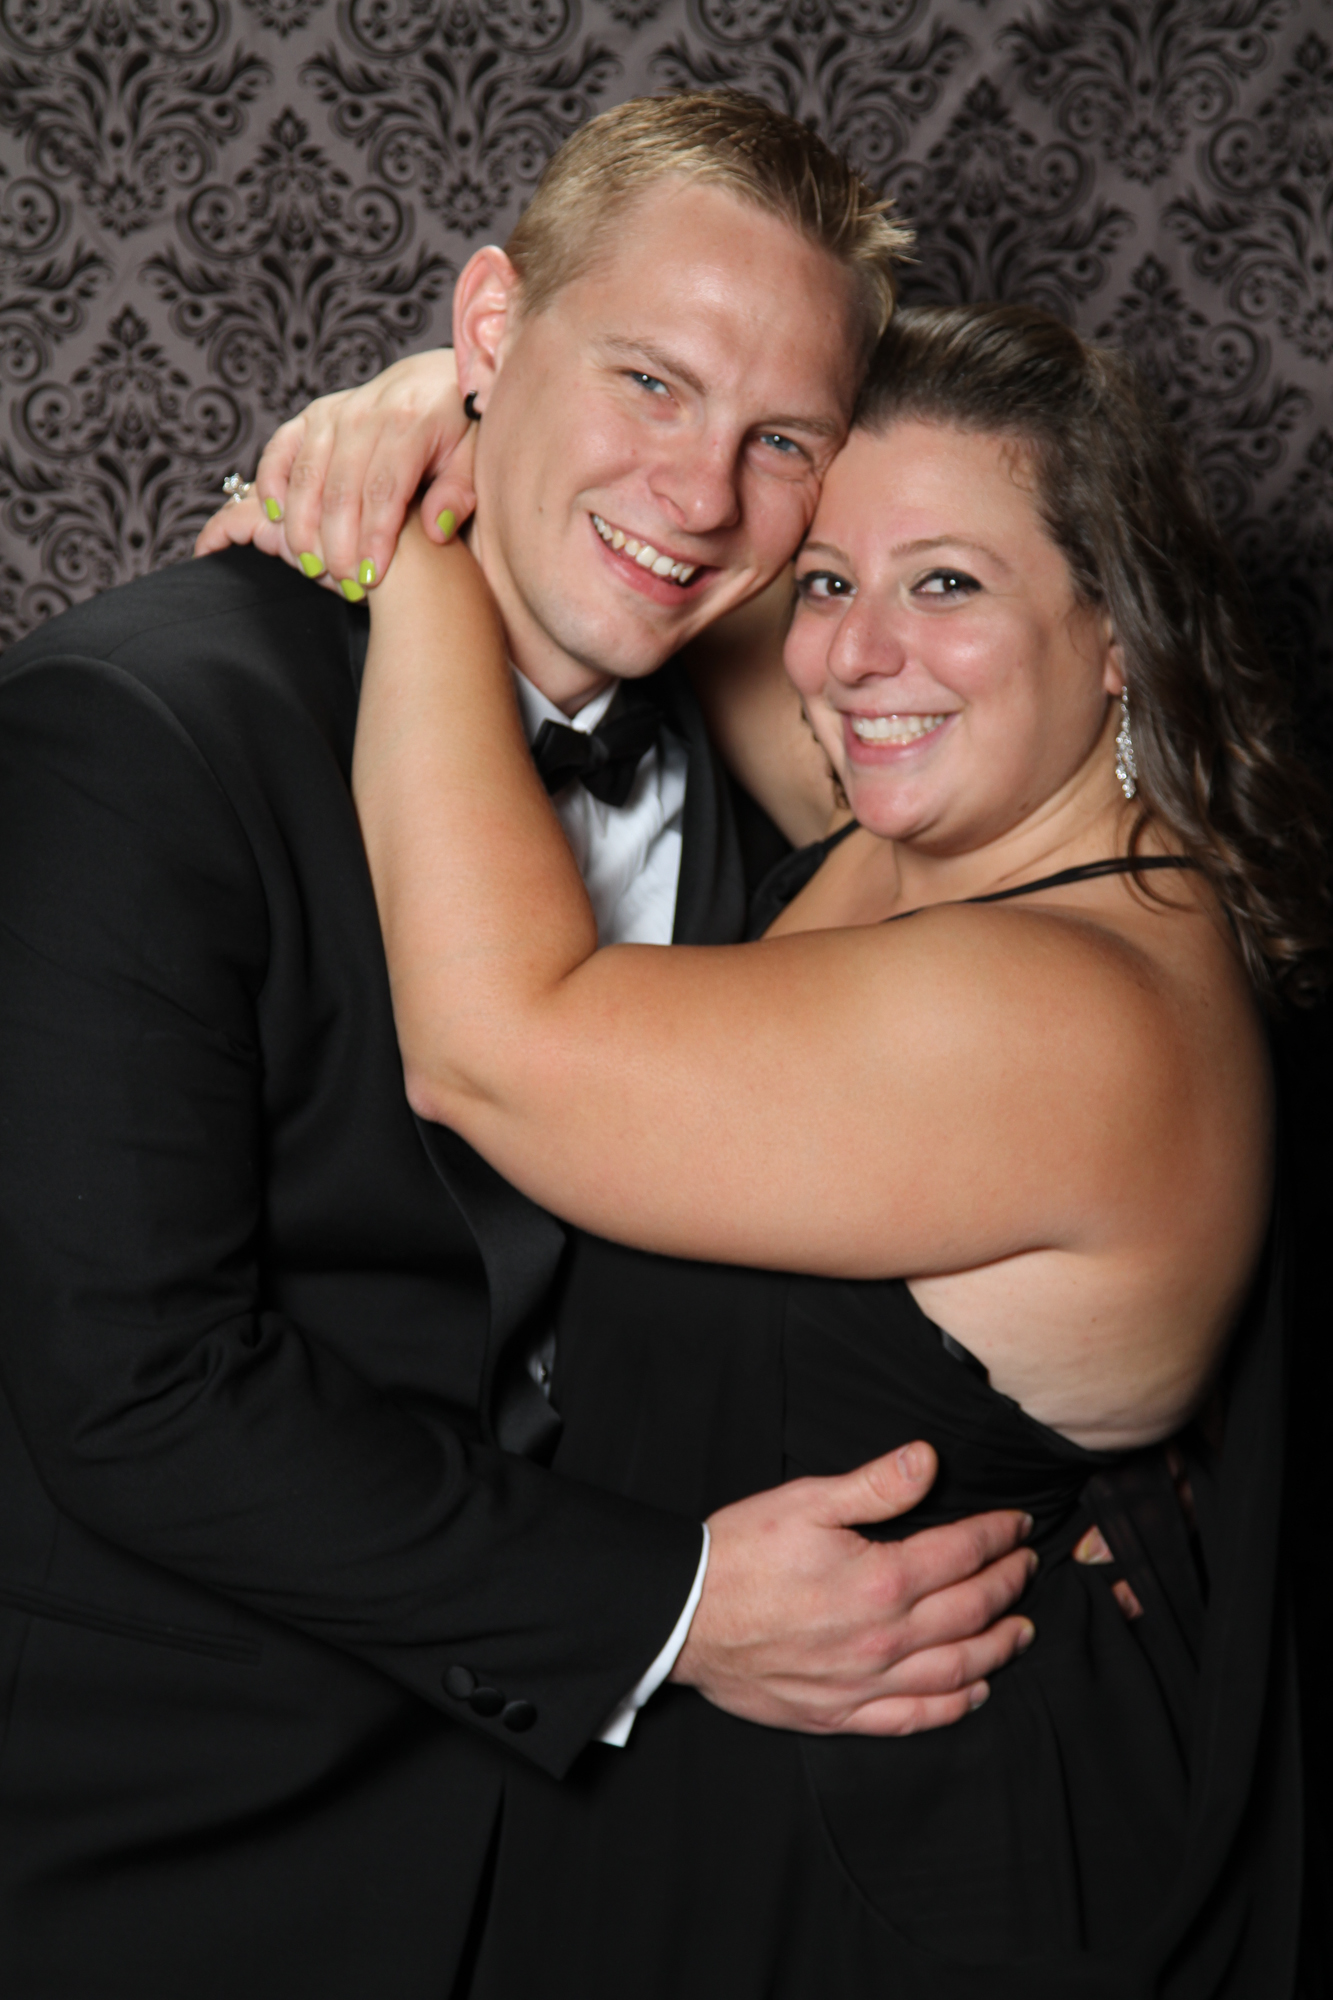 130907_4EyesWeddingBooth-178.jpg